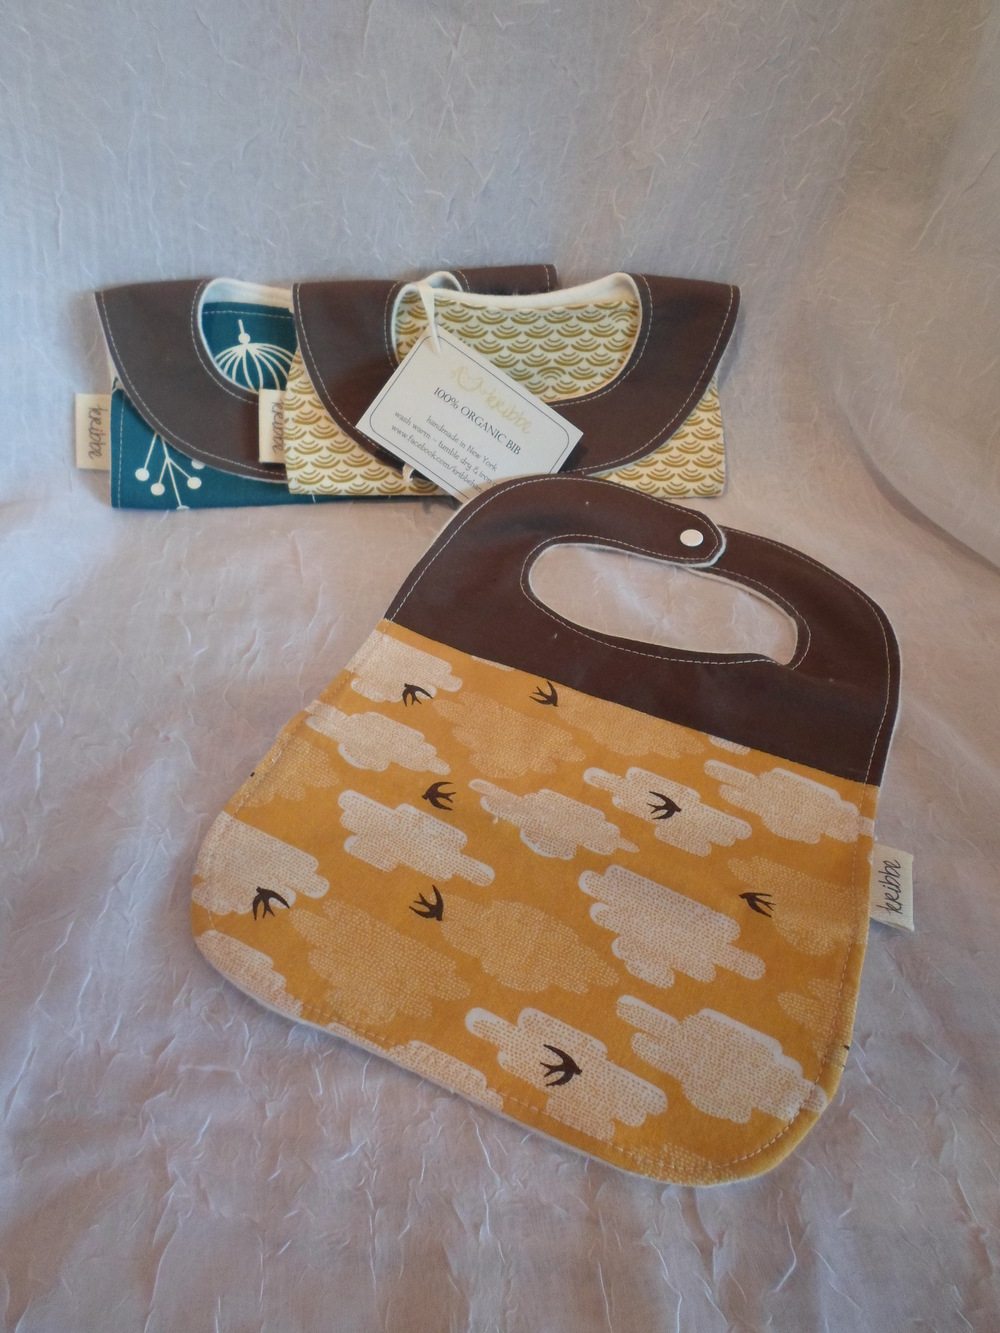 Kribbe Organic Bib Set of 3 Locally Handmade $39 Wants 1 - PURCHASED